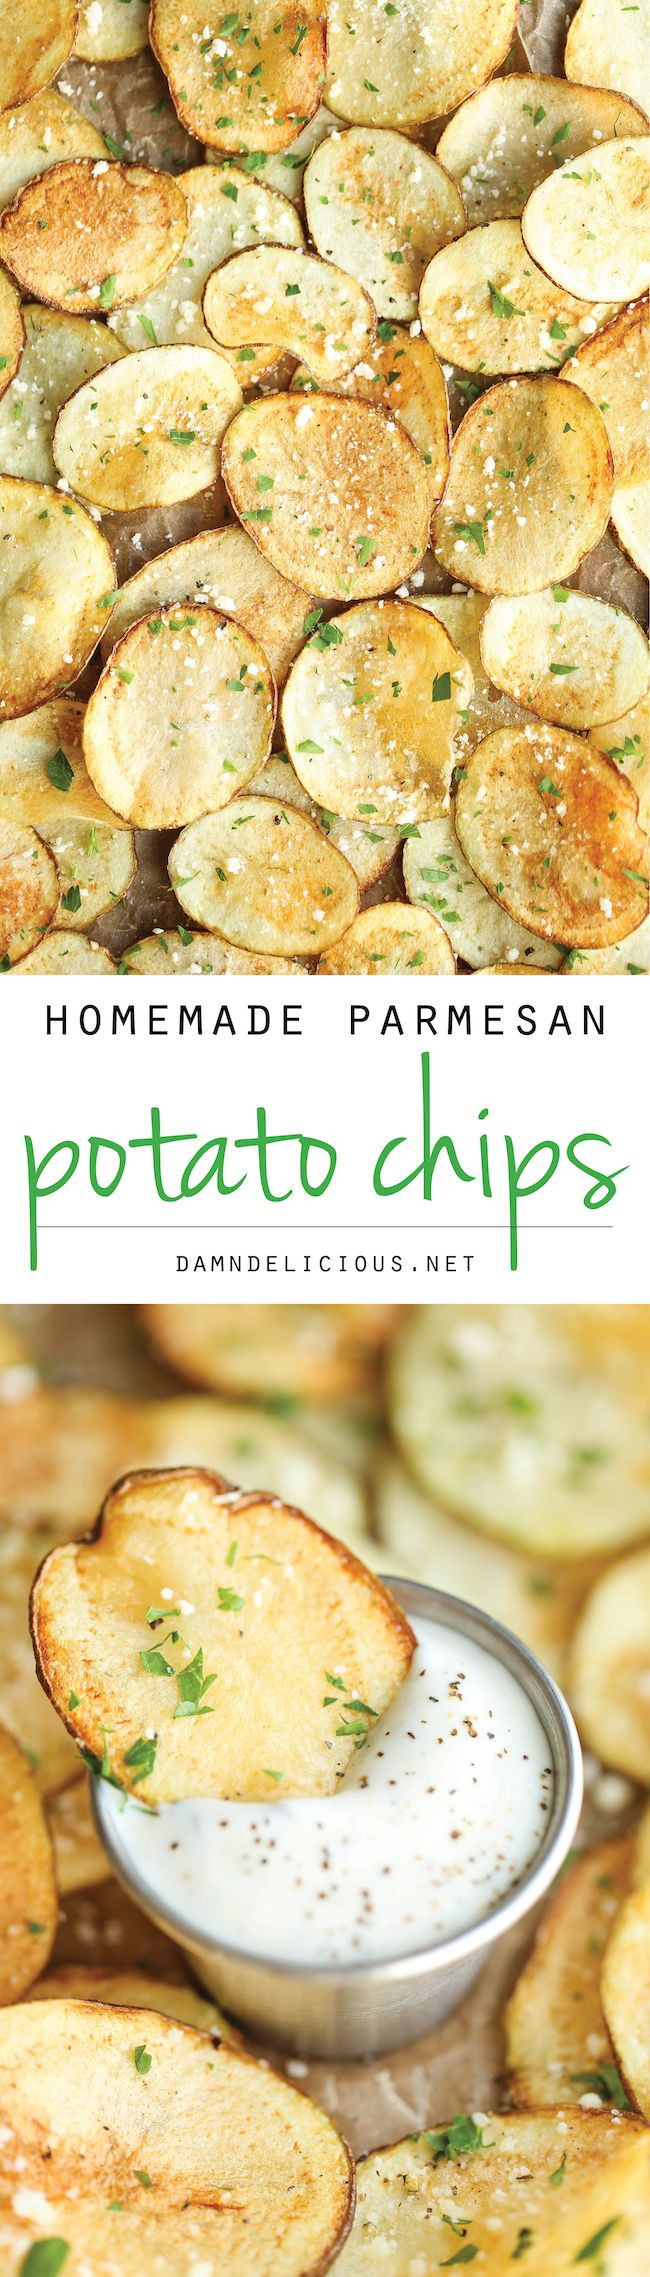 Homemade Parmesan Potato Chips - The easiest and cheapest DIY potato ...